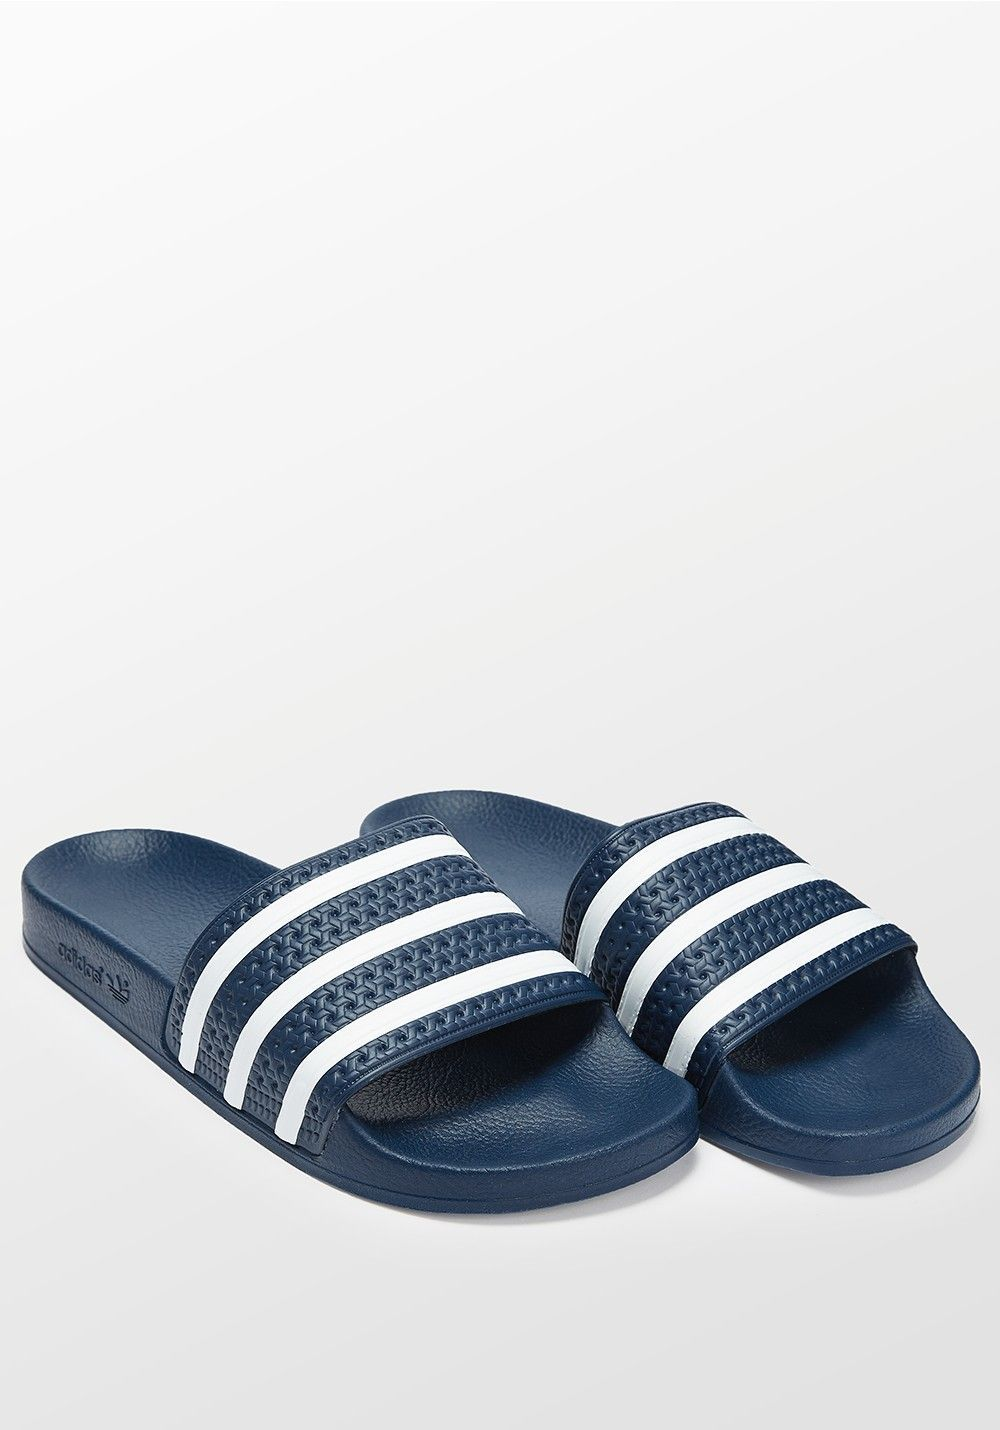 d0c7577f43e5a3 Image result for adidas slides blue and white